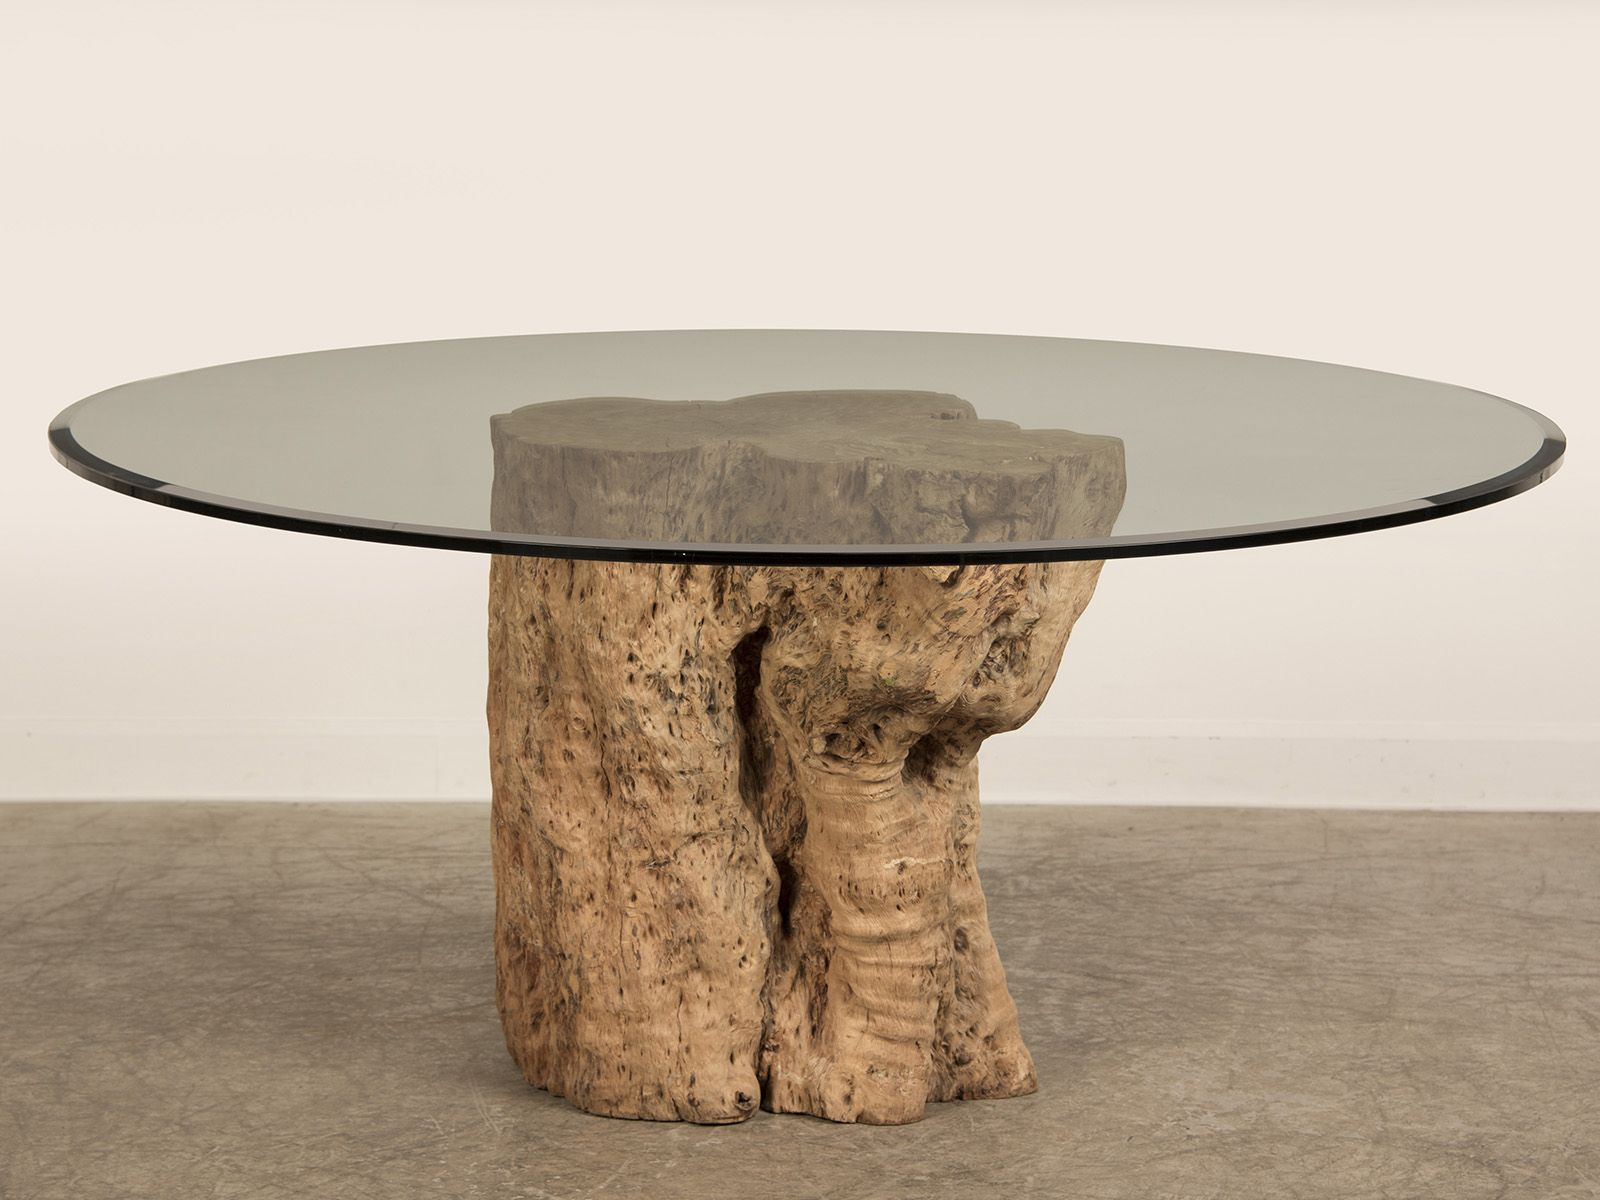 Awesome Teak Tree Trunk Table With Circled Glass Top As Inspiring Cocktail  Table Ideas With Natural